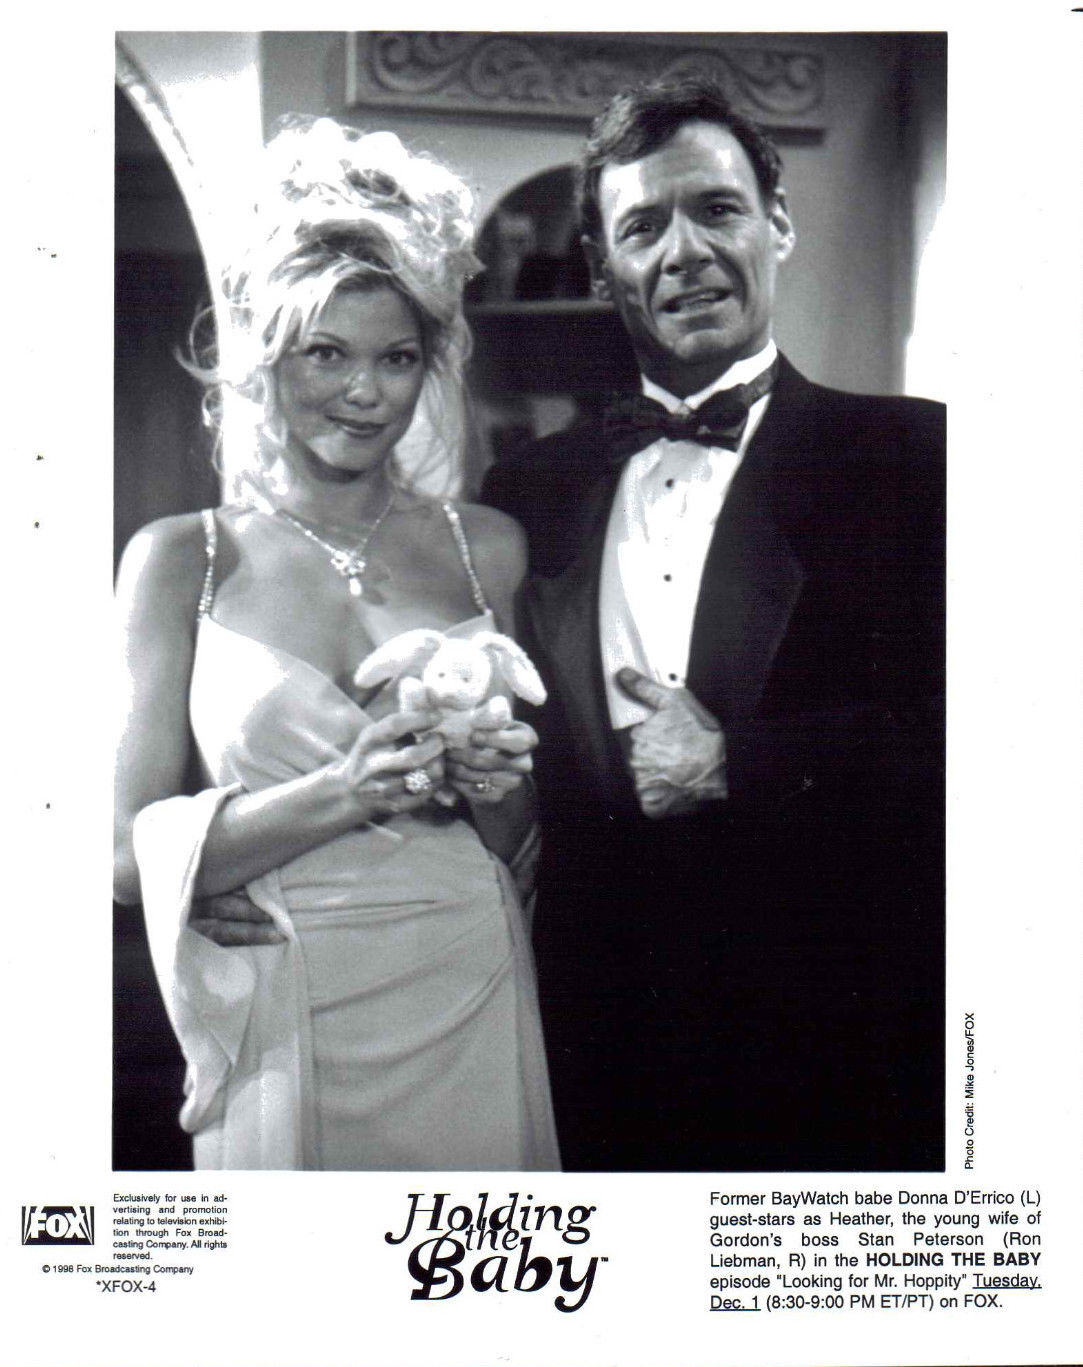 Holding_The_Baby_1998_US_TV_Series_Press_Pack22